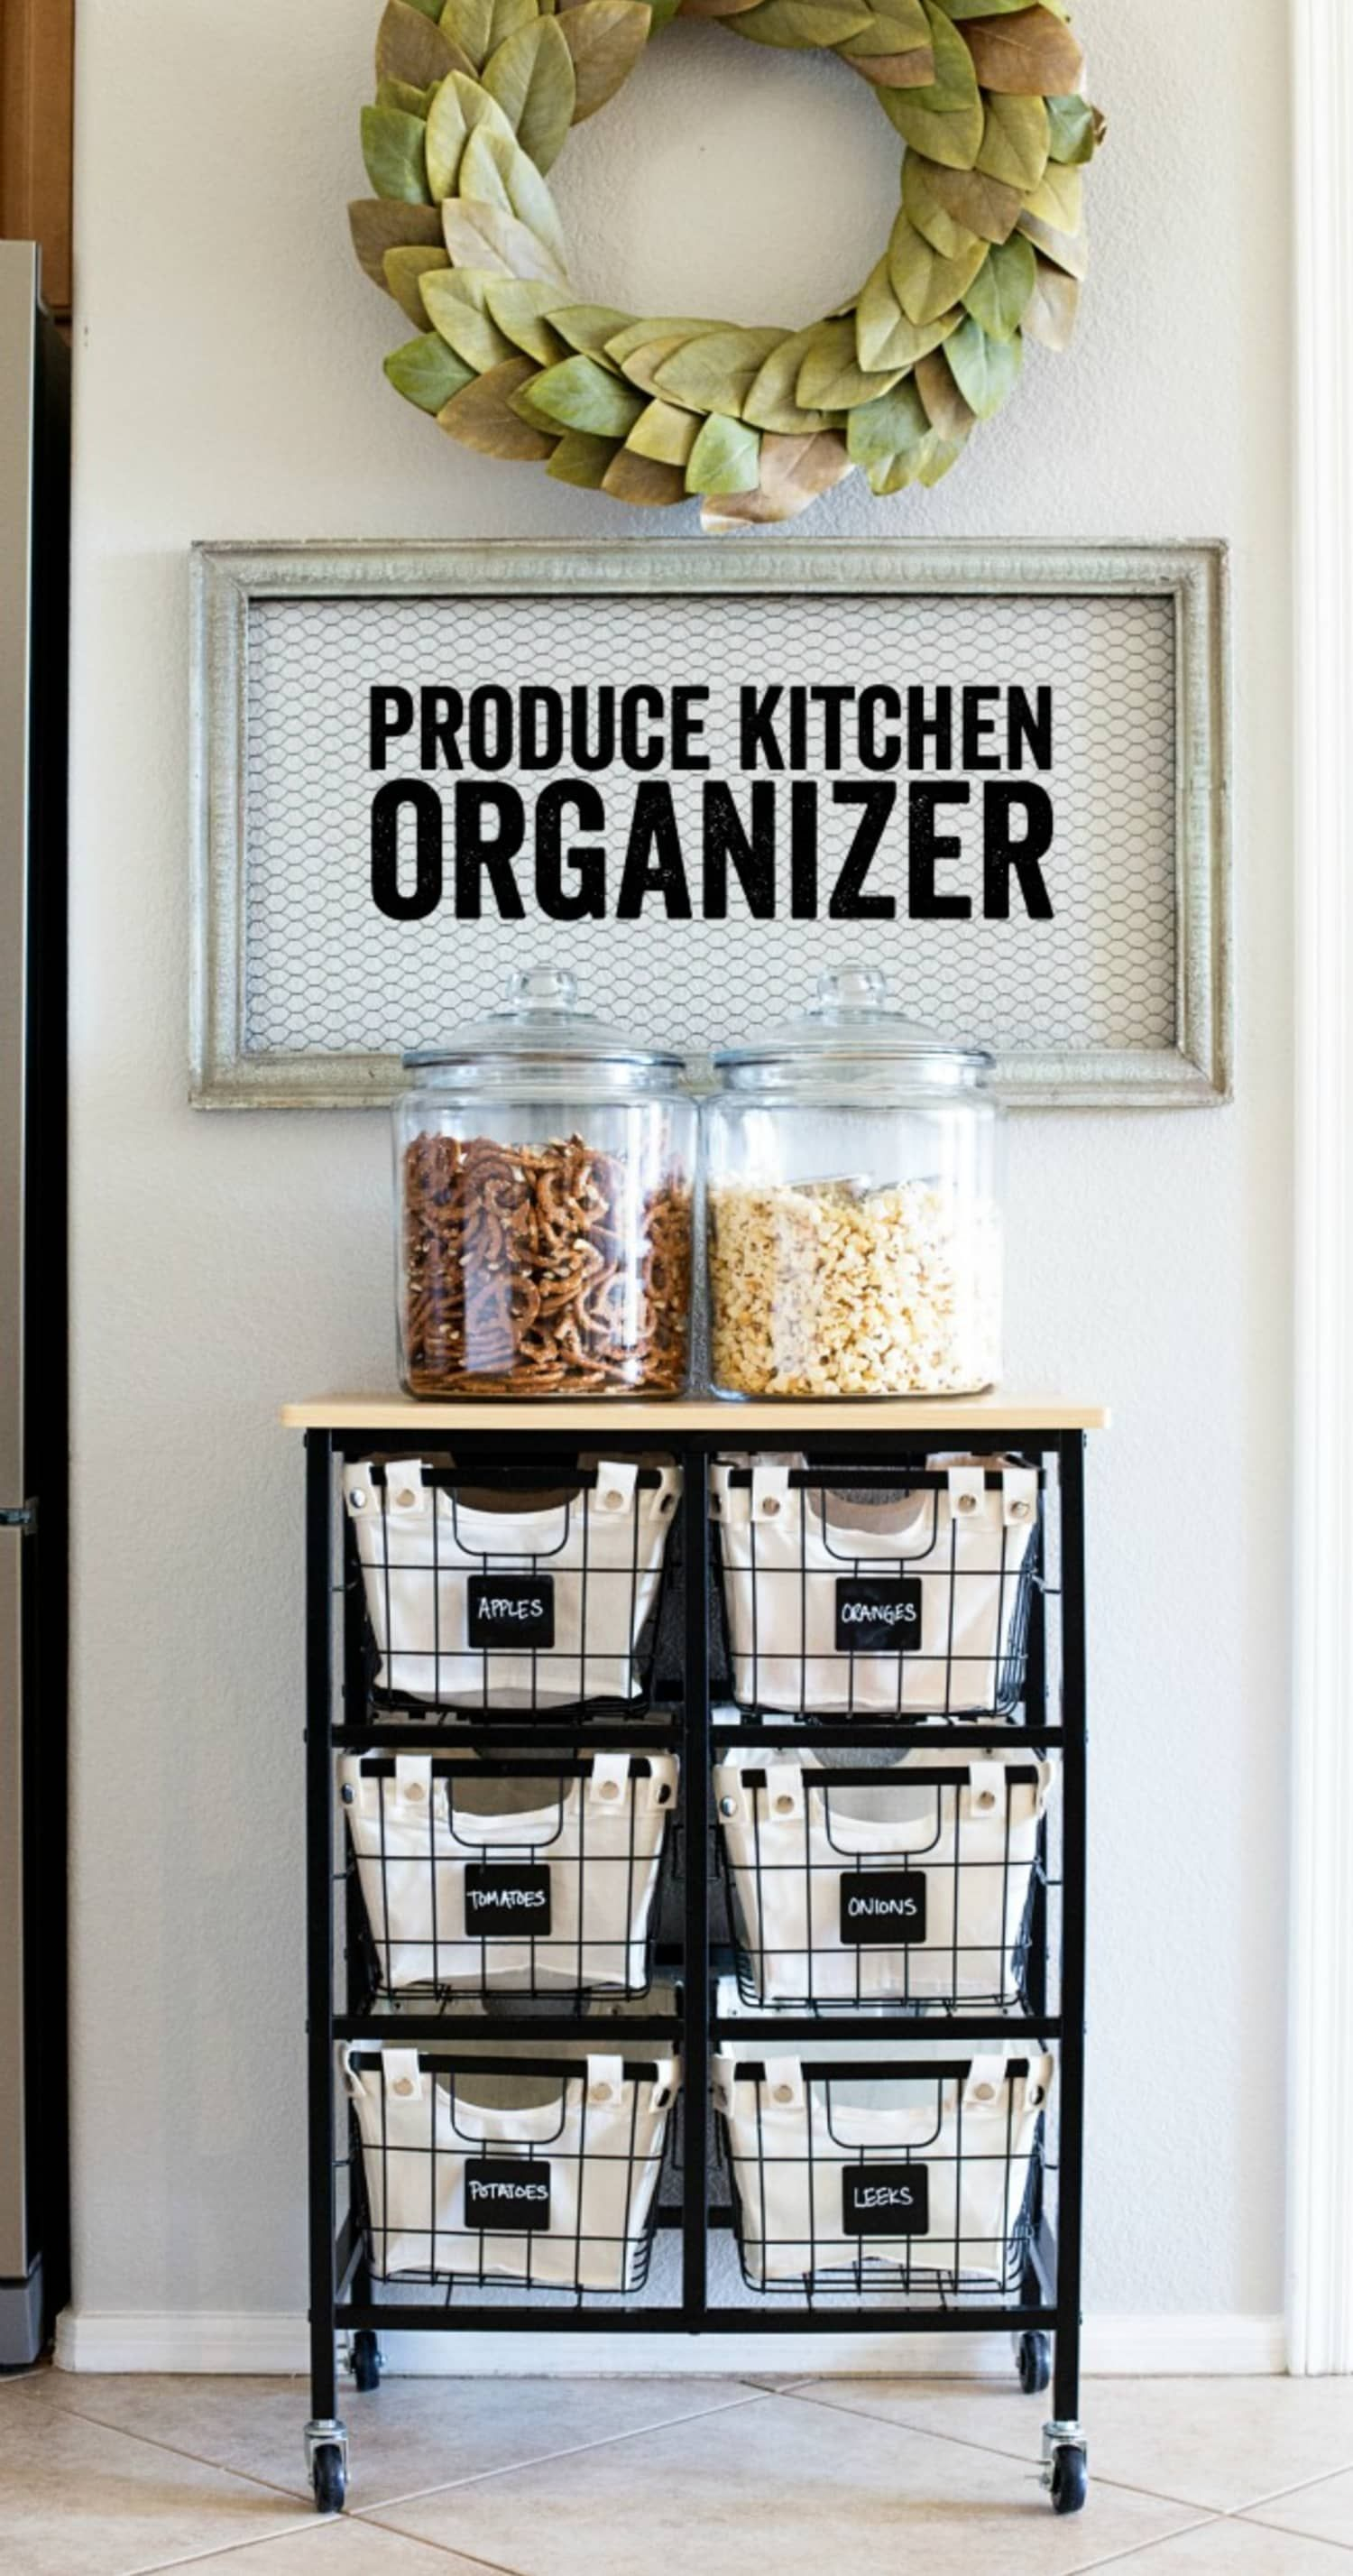 Don't Let Your Small-Space Kitchen Go Pantry-less—Try These Easy DIYs Instead